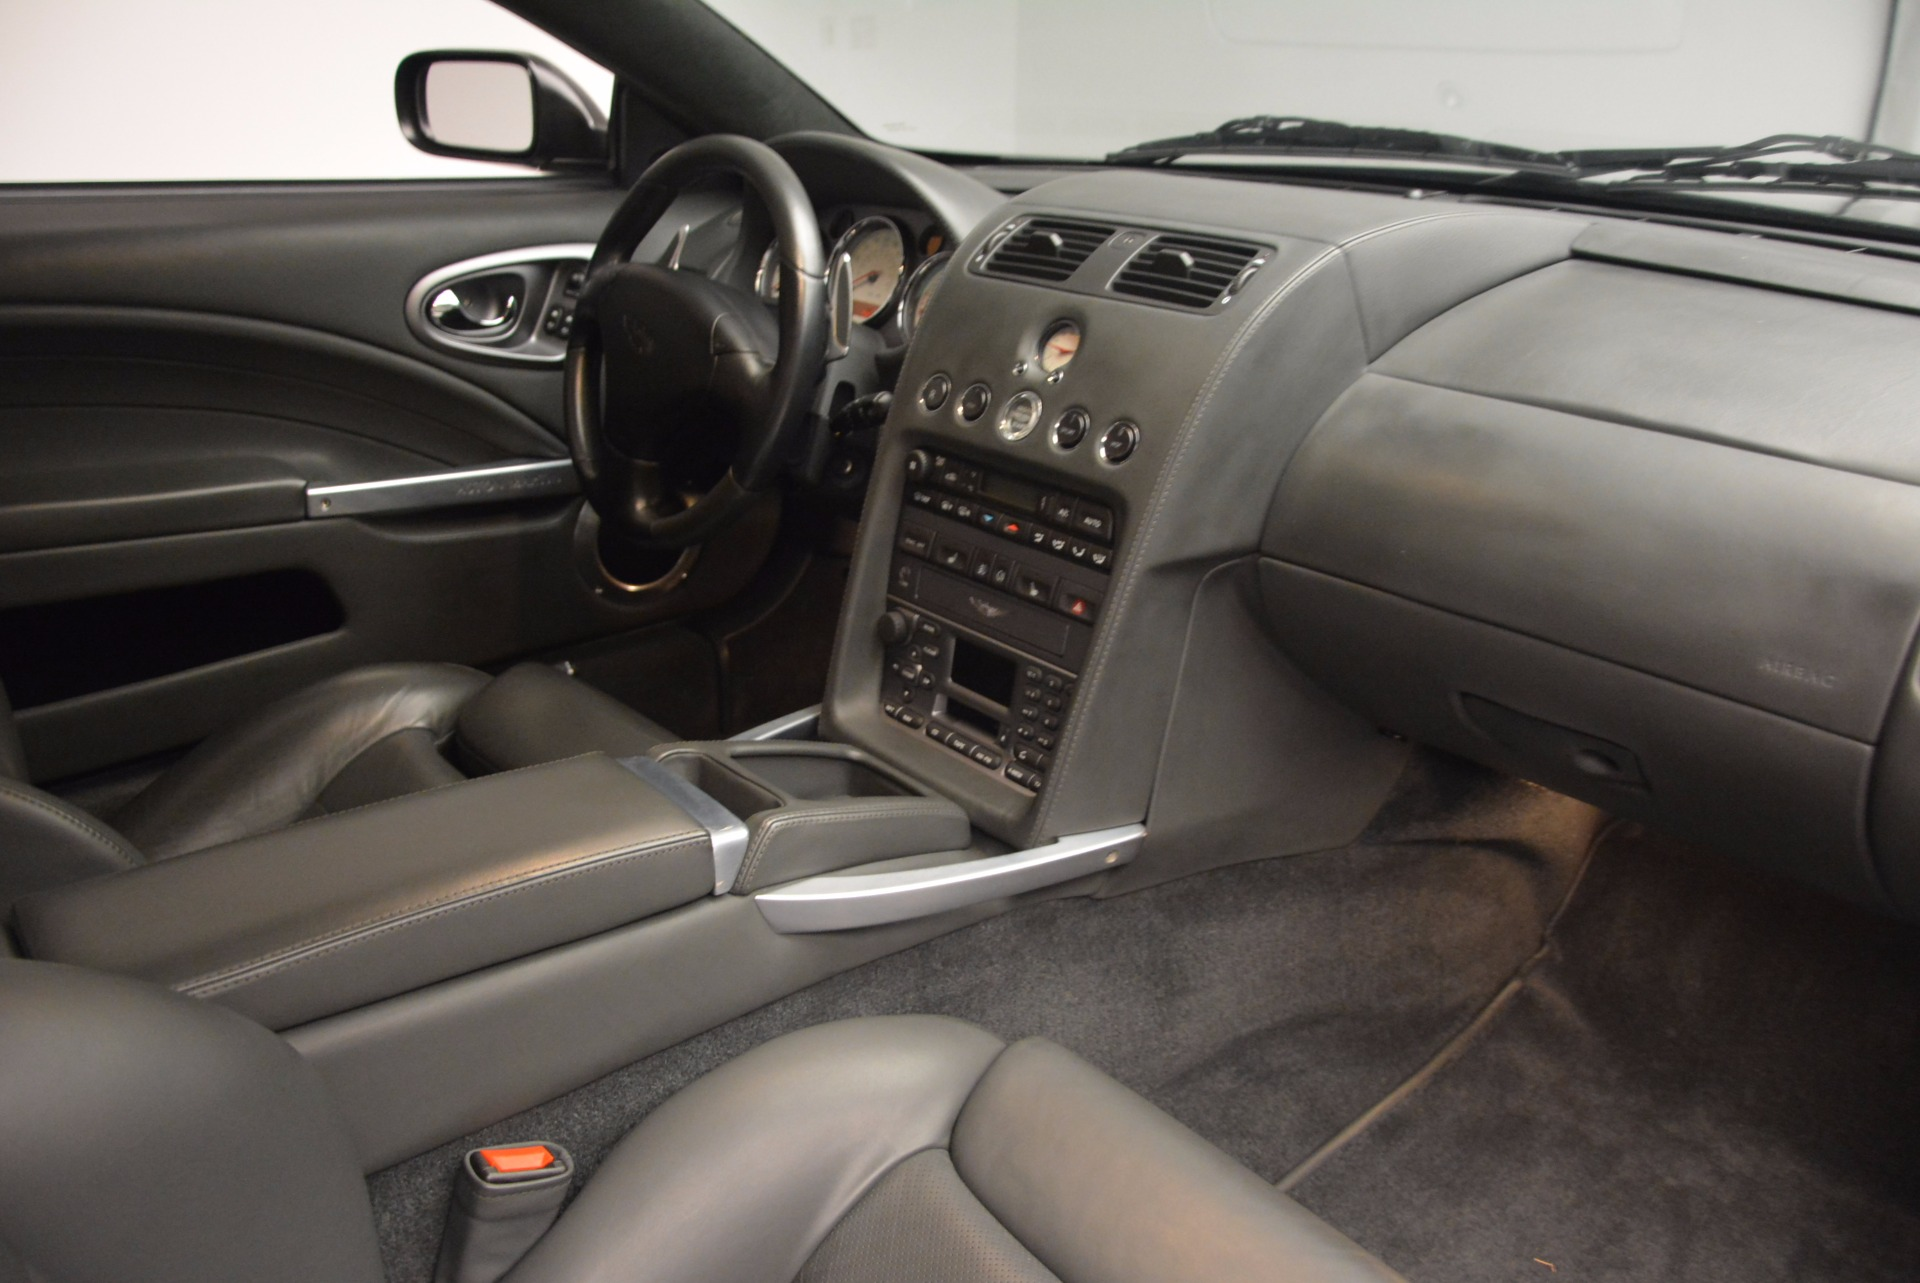 Used 2005 Aston Martin V12 Vanquish S For Sale In Greenwich, CT 645_p20